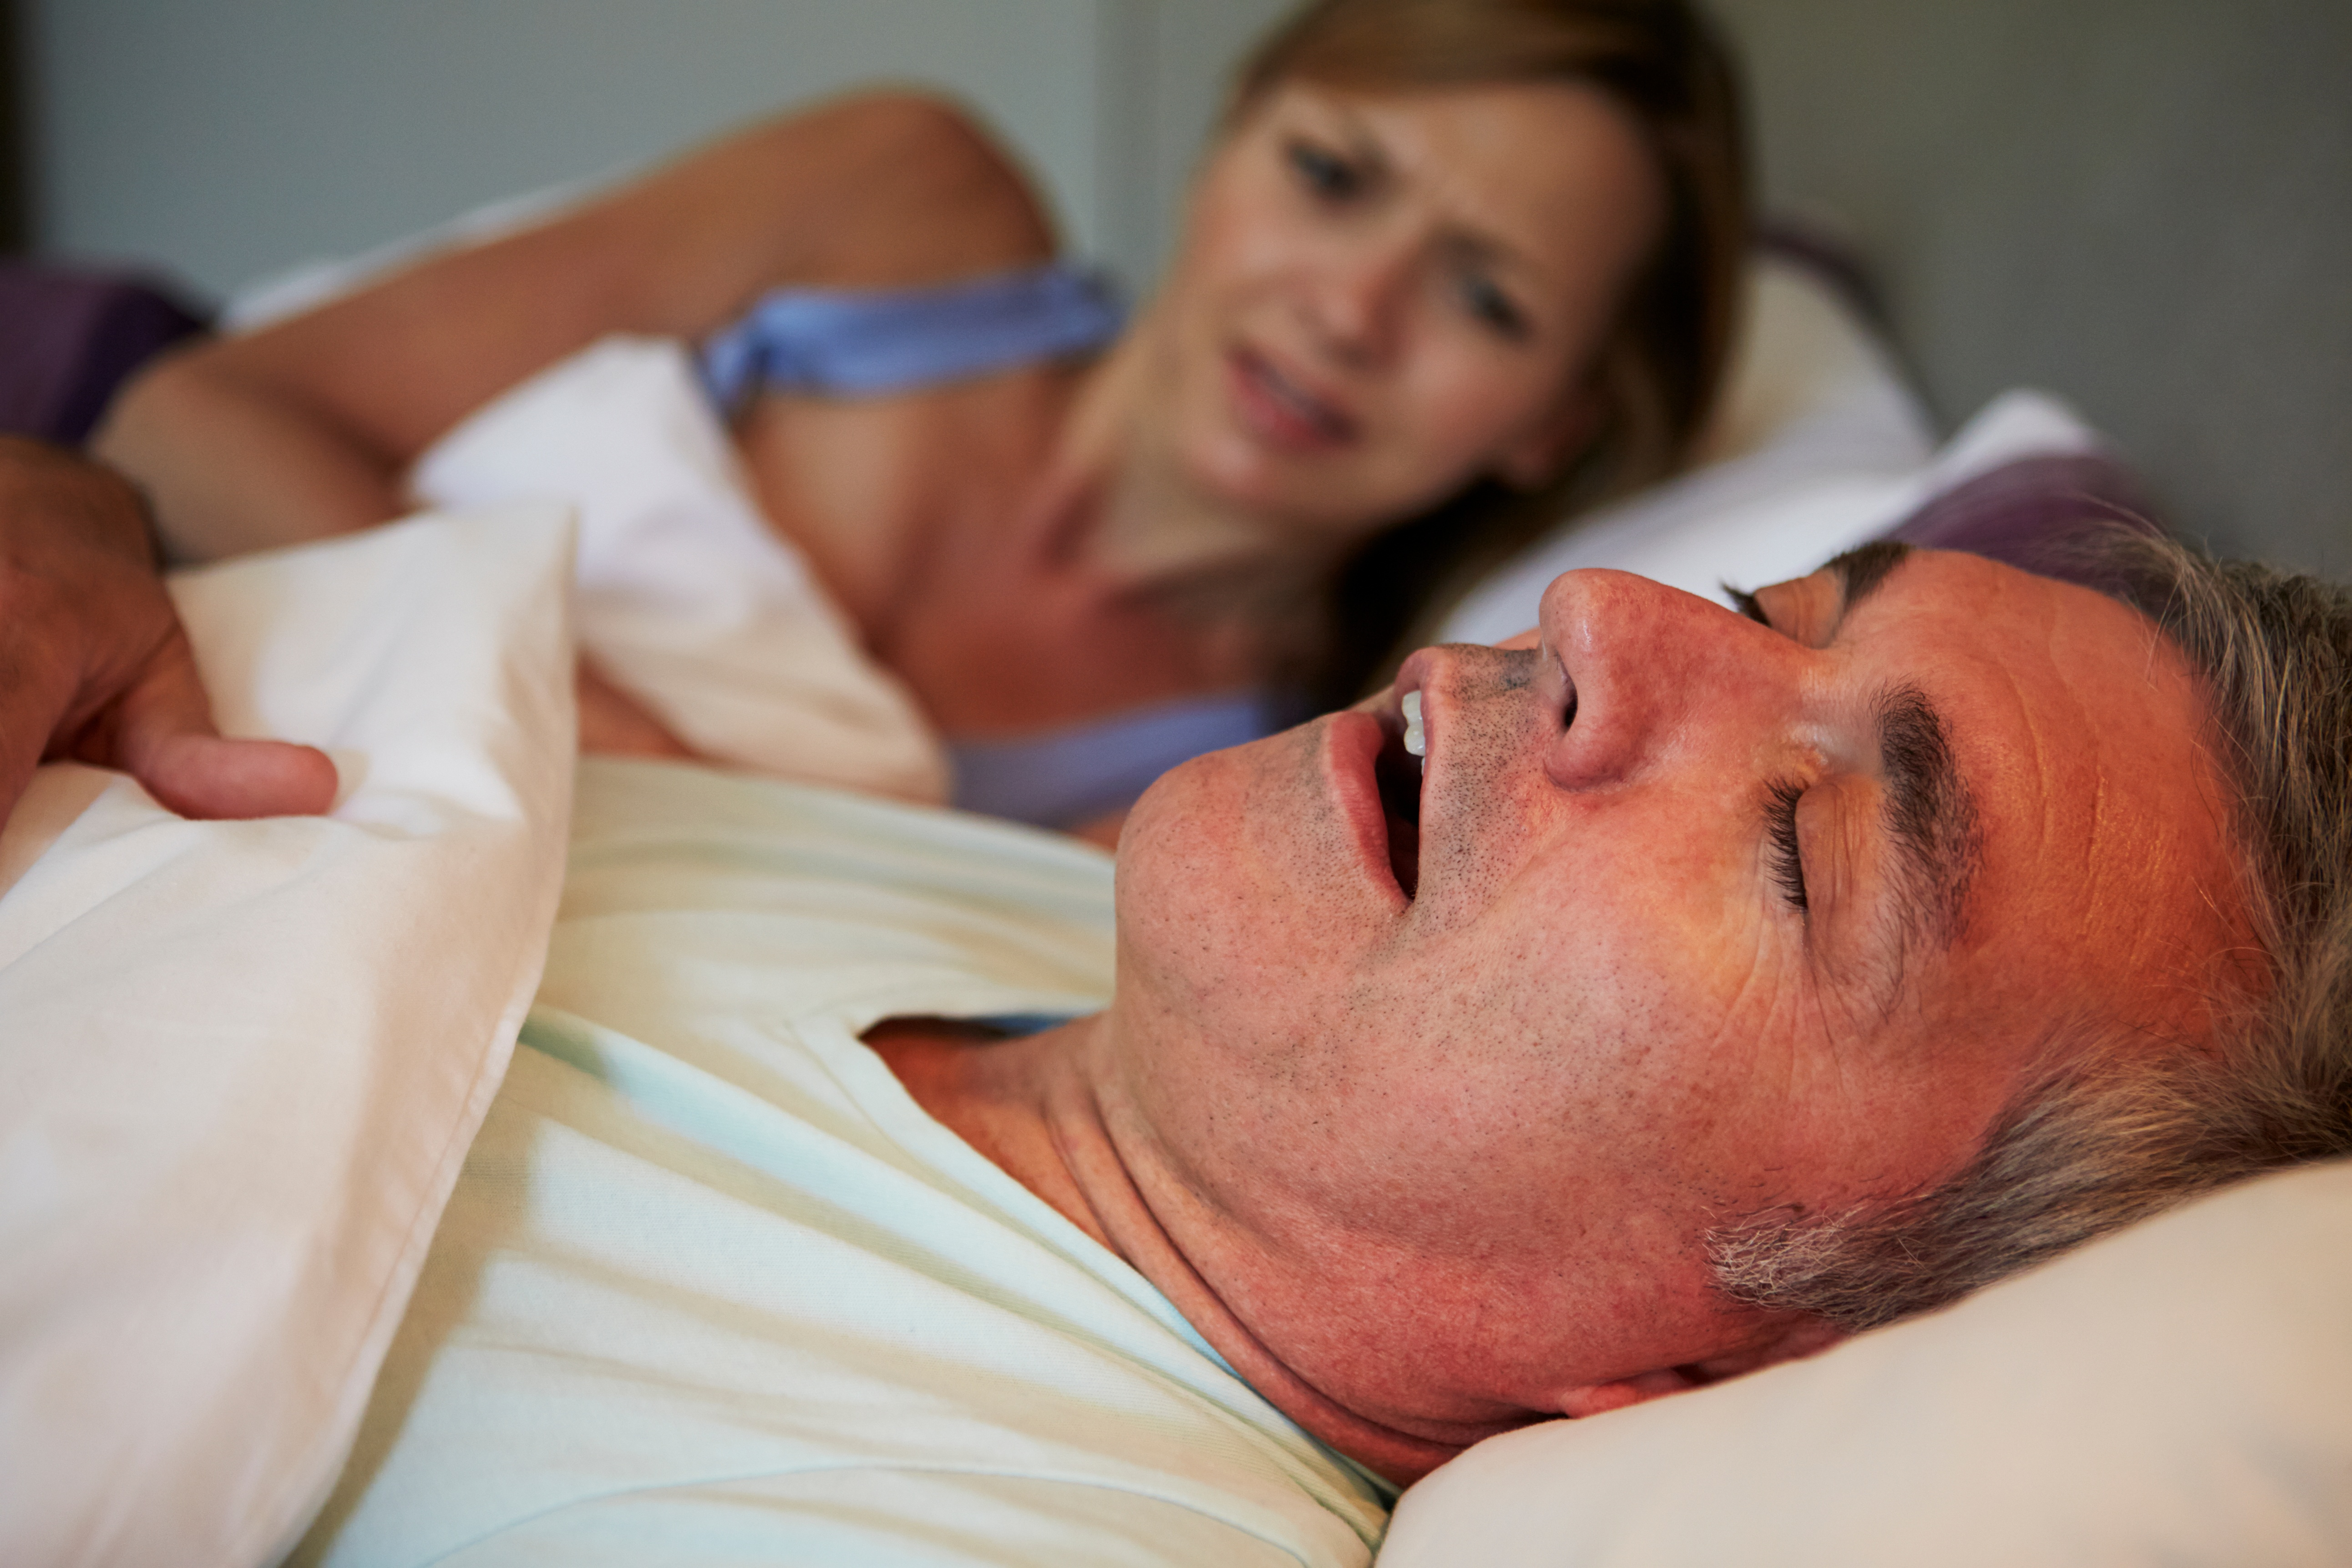 Is snoring an innocent part of sleep or is it a symptom of something more serious?